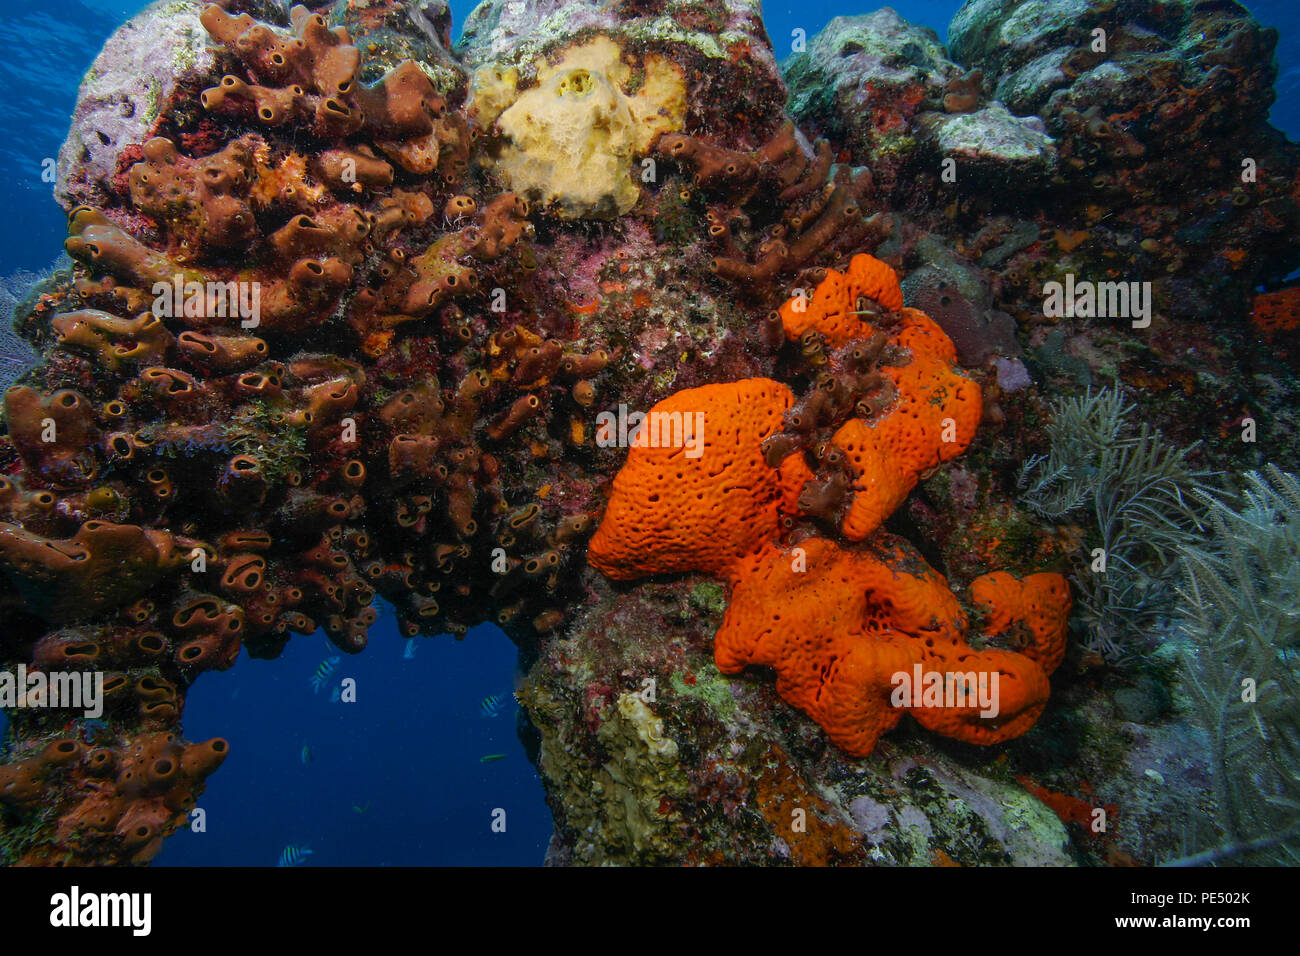 Sponges covering an underwater reef off the Florida Keys Stock Photo